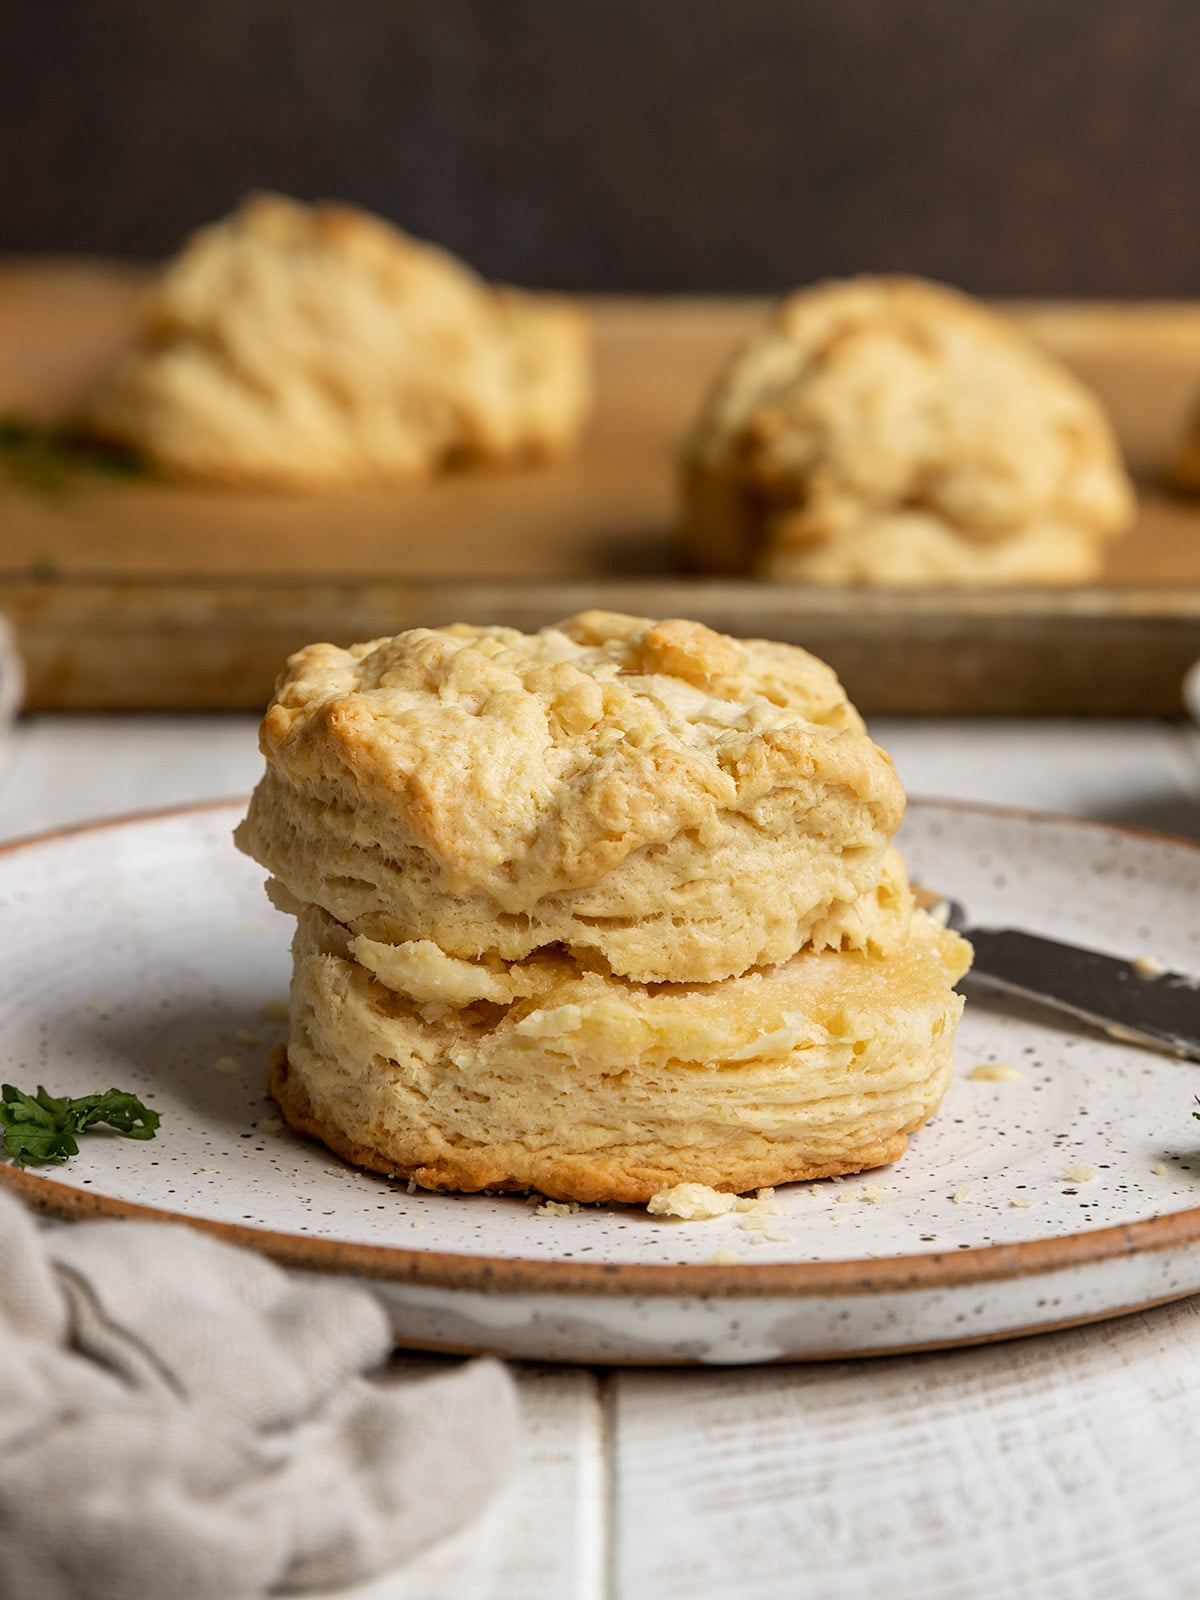 flaky biscuit on a plate